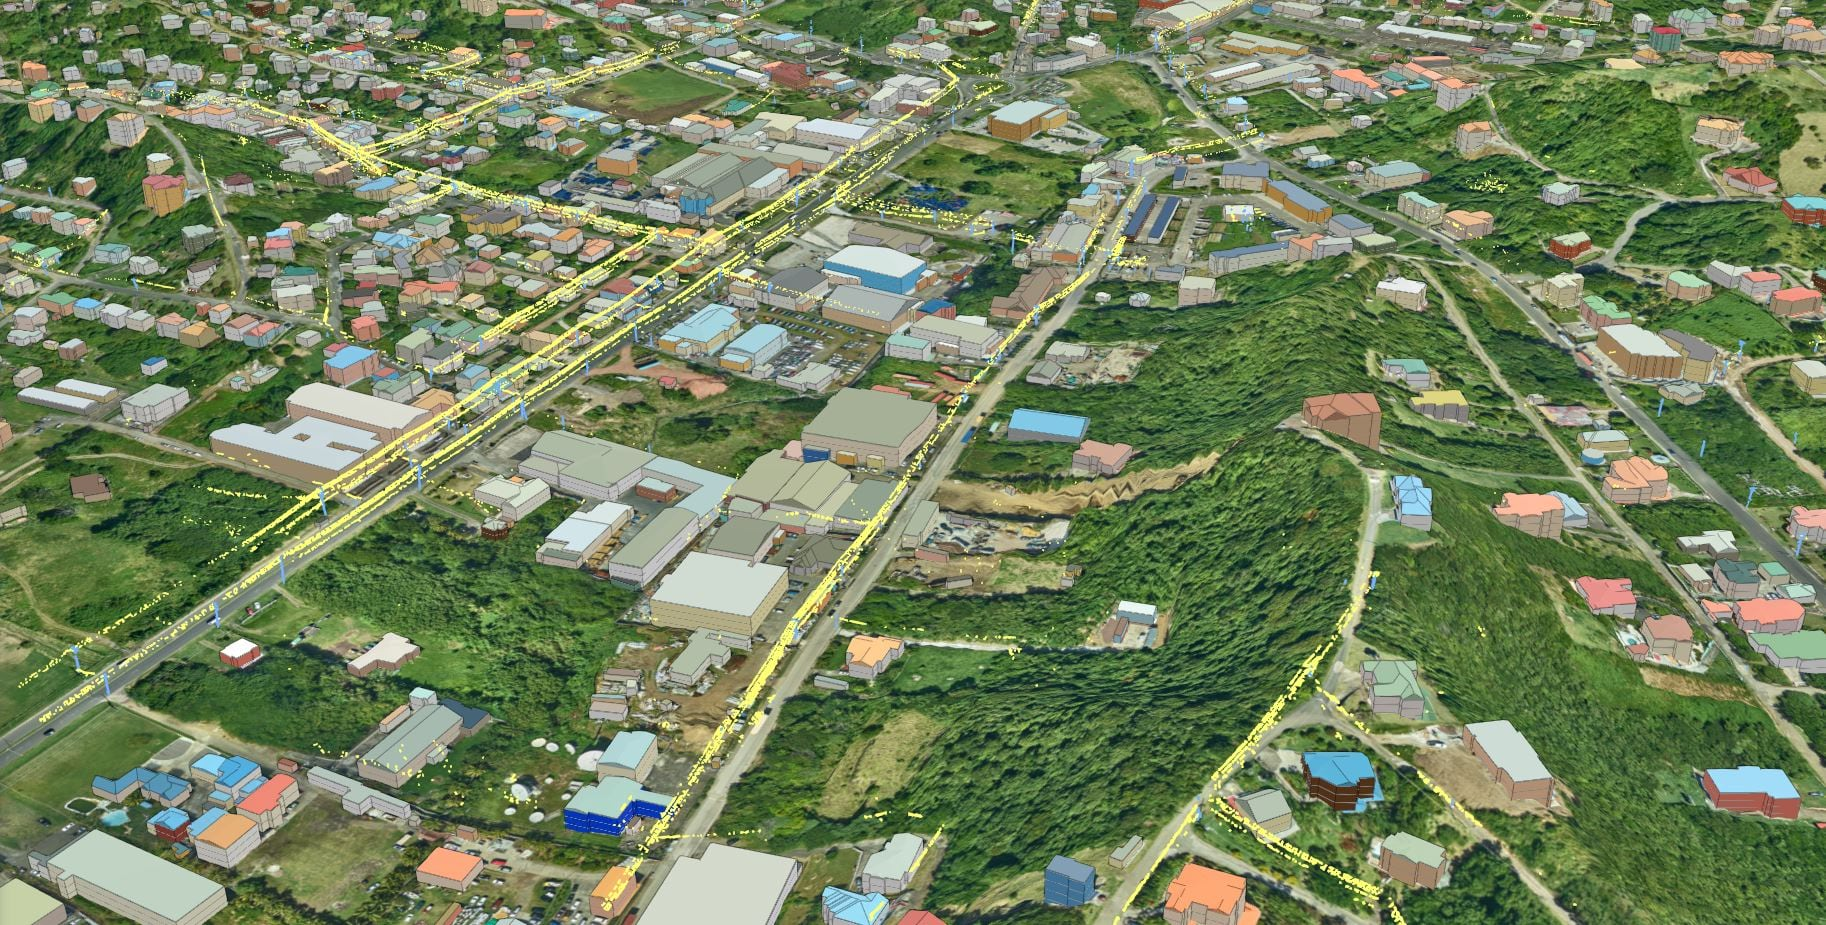 Electric poles and power lines classified using pre-trained point cloud classification model